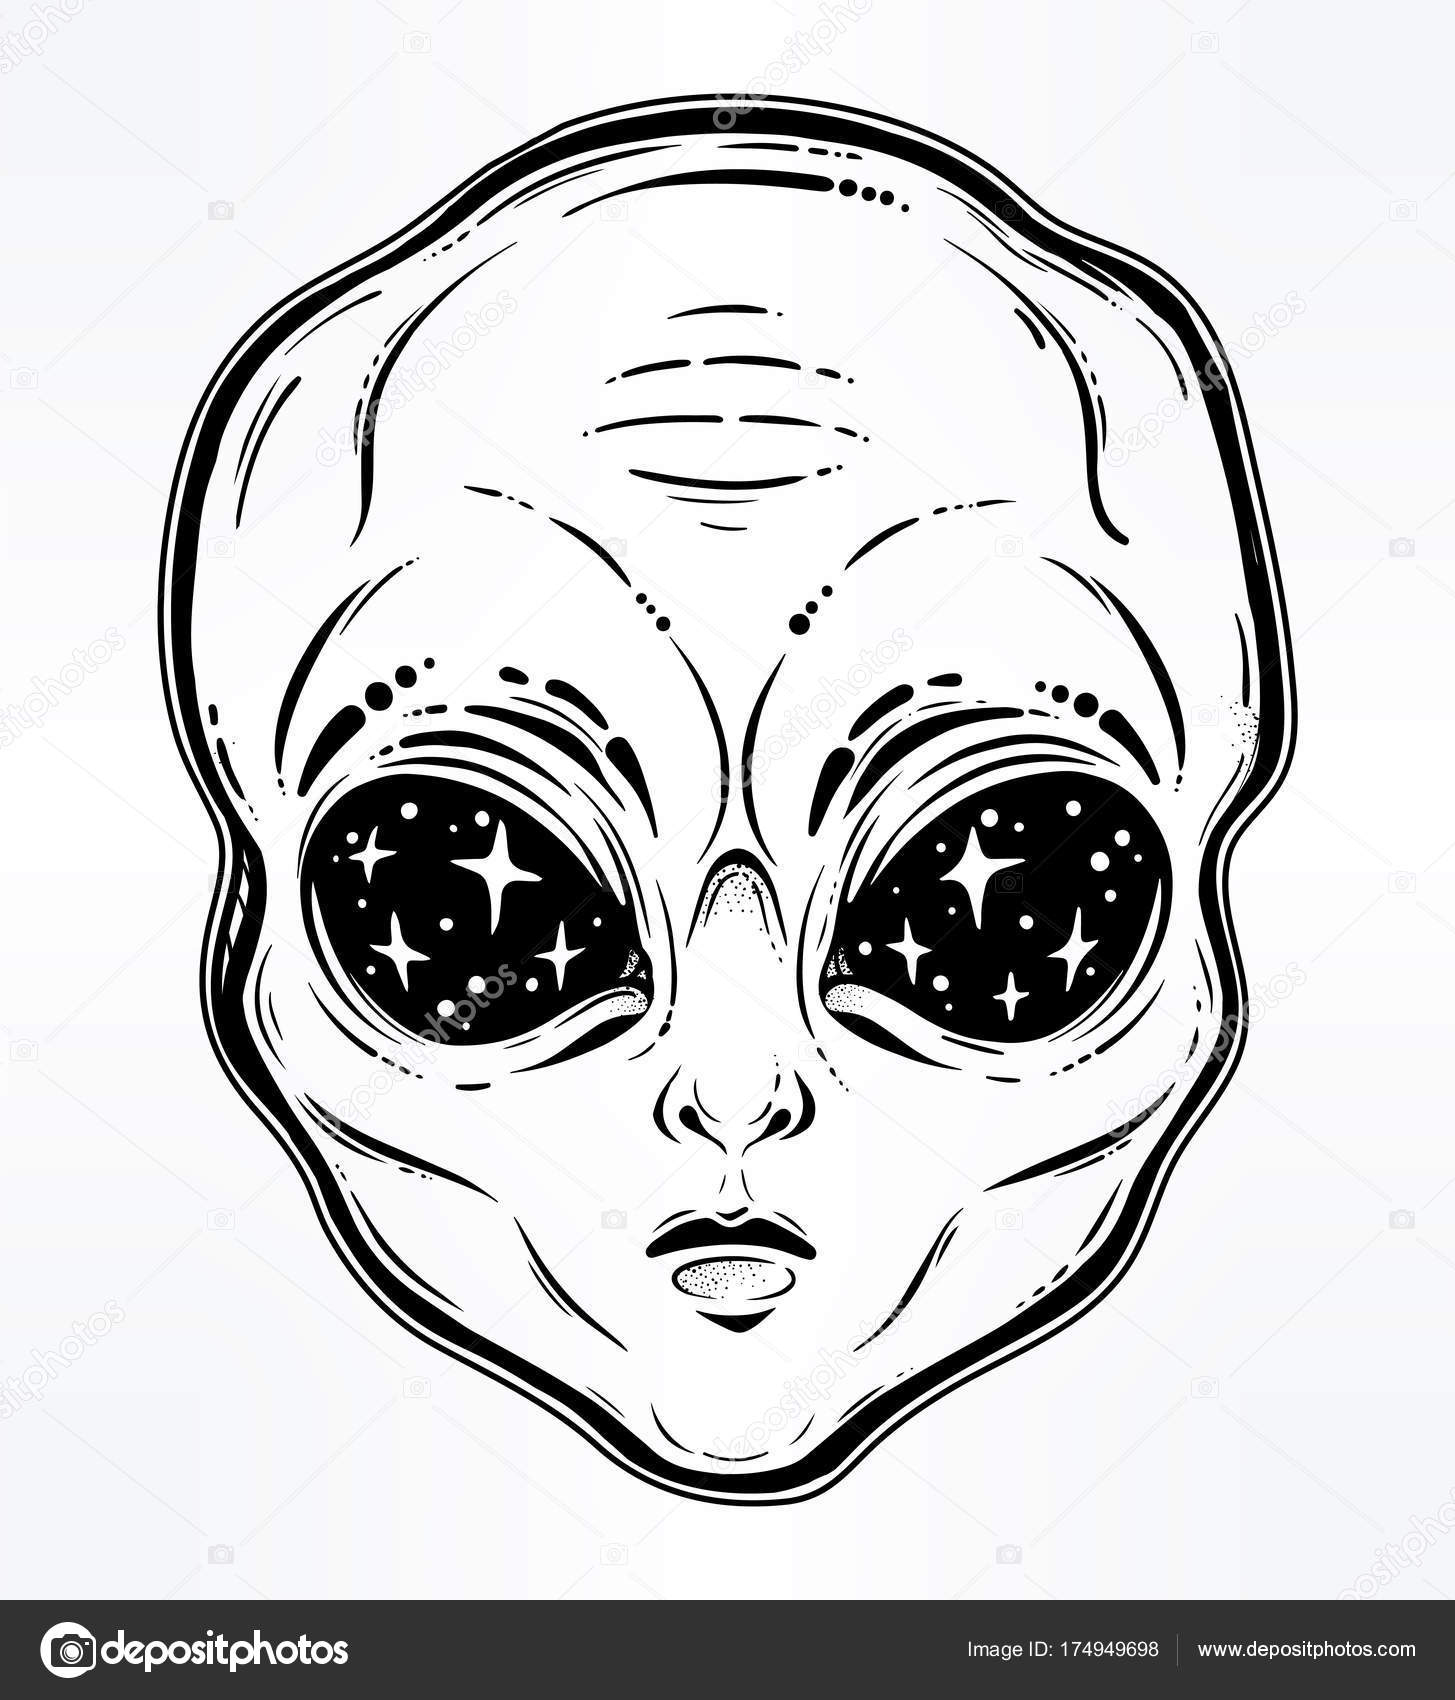 Vector Illustration With A Alien Head With Starry Eyes